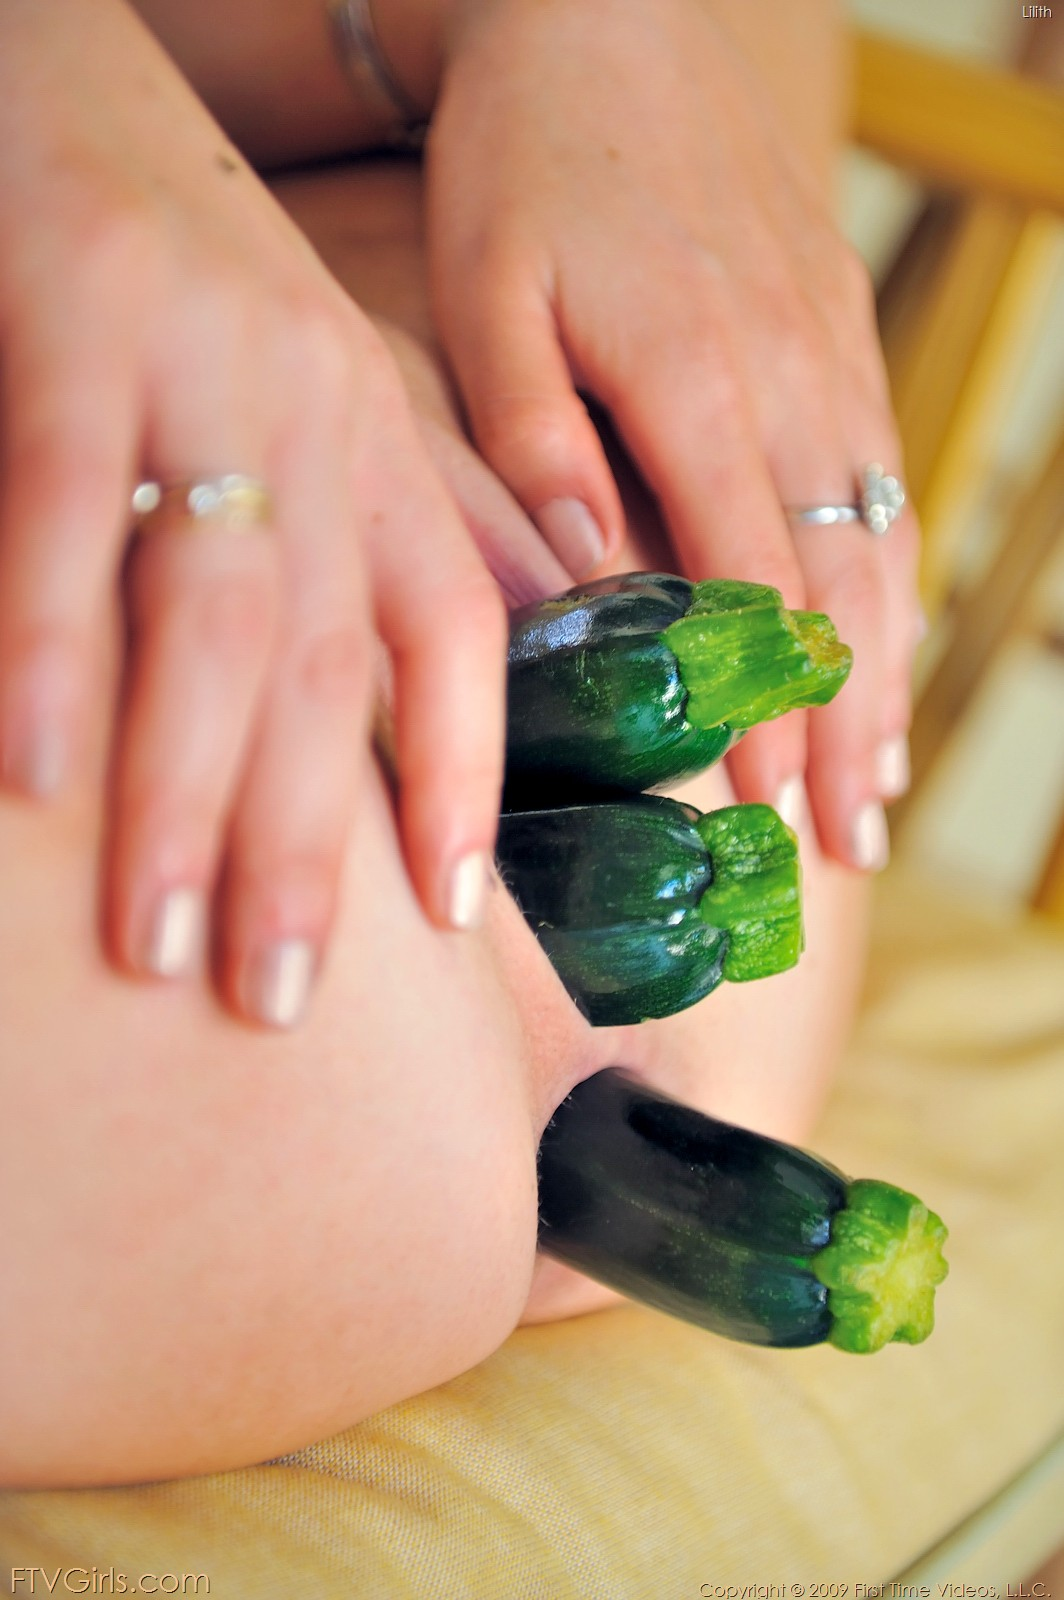 Hot girls fucking vegetables